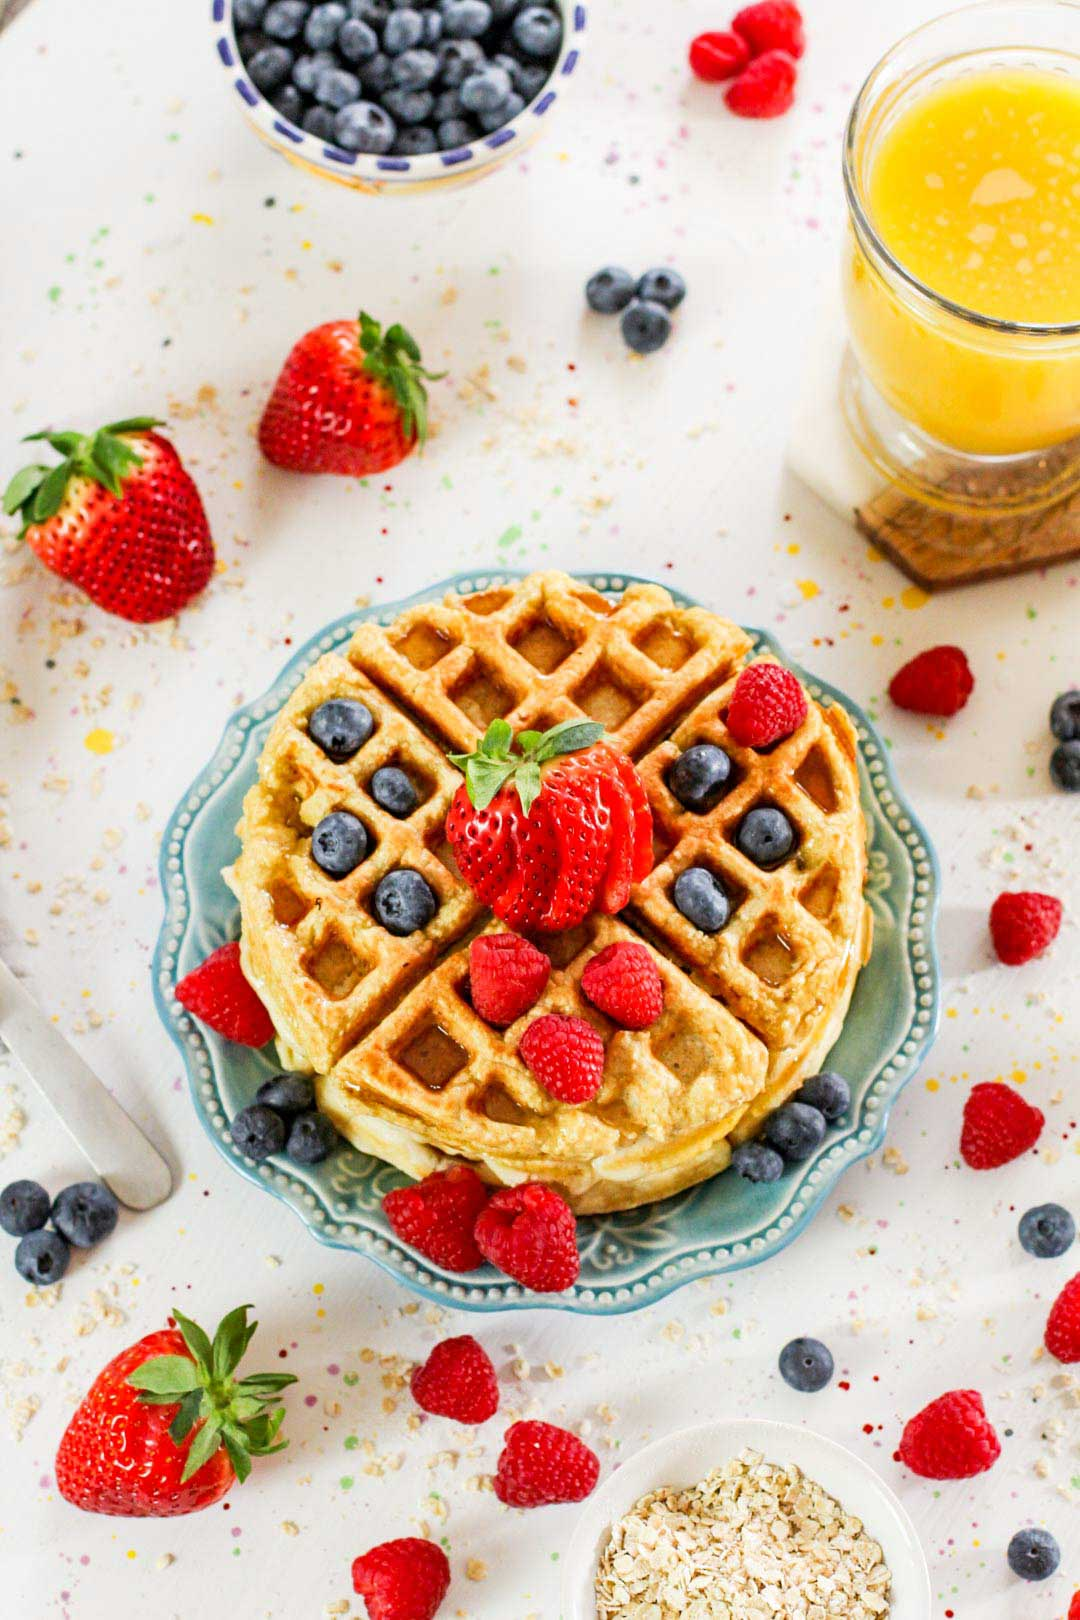 top down view of fresh waffles, oats and berries sprinkled on the table.